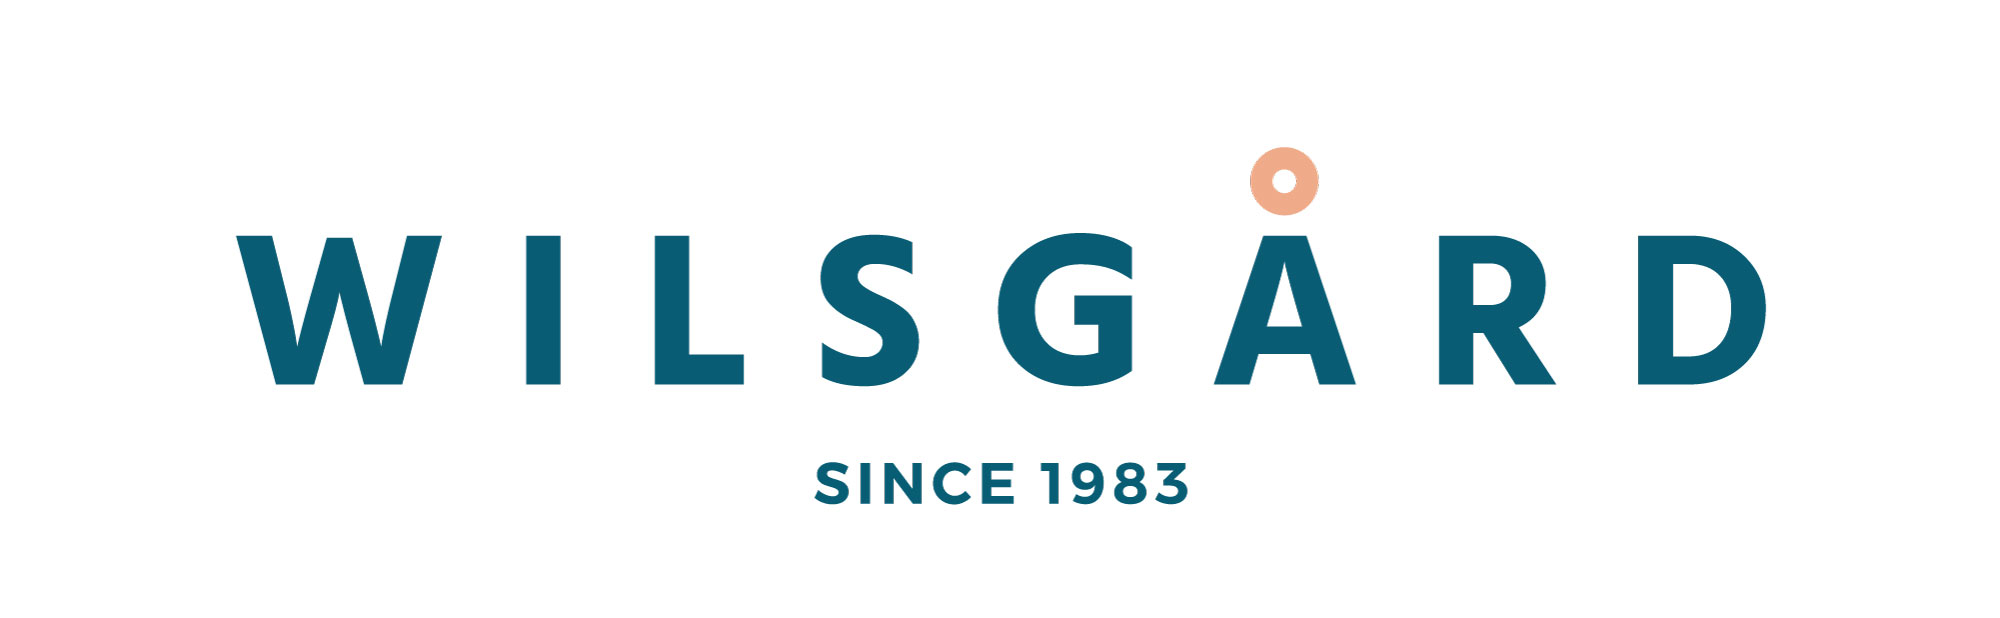 Wilsgård logo in blue